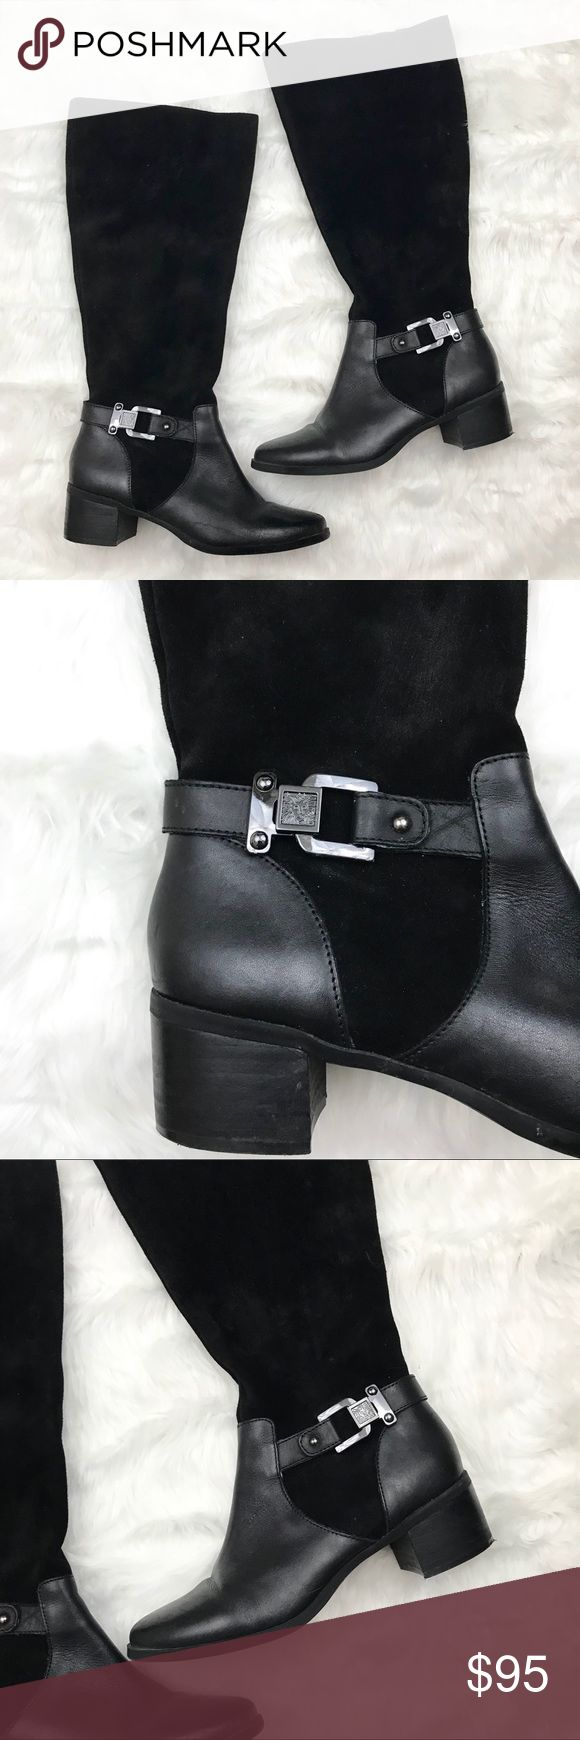 Anne Klein Riding Boots, Tall Leather Black 8.5 Absolutely stunning Anne Klein riding boots! They are knee height and feature a decorative buckle with the Anne Klein logo.   CONDITION Excellent used condition! A few imperfections here and there (see pictures) and a little wear on the bottoms, but otherwise in great condition.   SIZE US 8.5 (EUR 38.5) Shaft: 15.5in Calf: 17in Heel: 1.75in  MATERIALS Leather + man made  • ALL OFFERS WELCOME! • Lowballs don't offend me. I'm happy to negotiate…